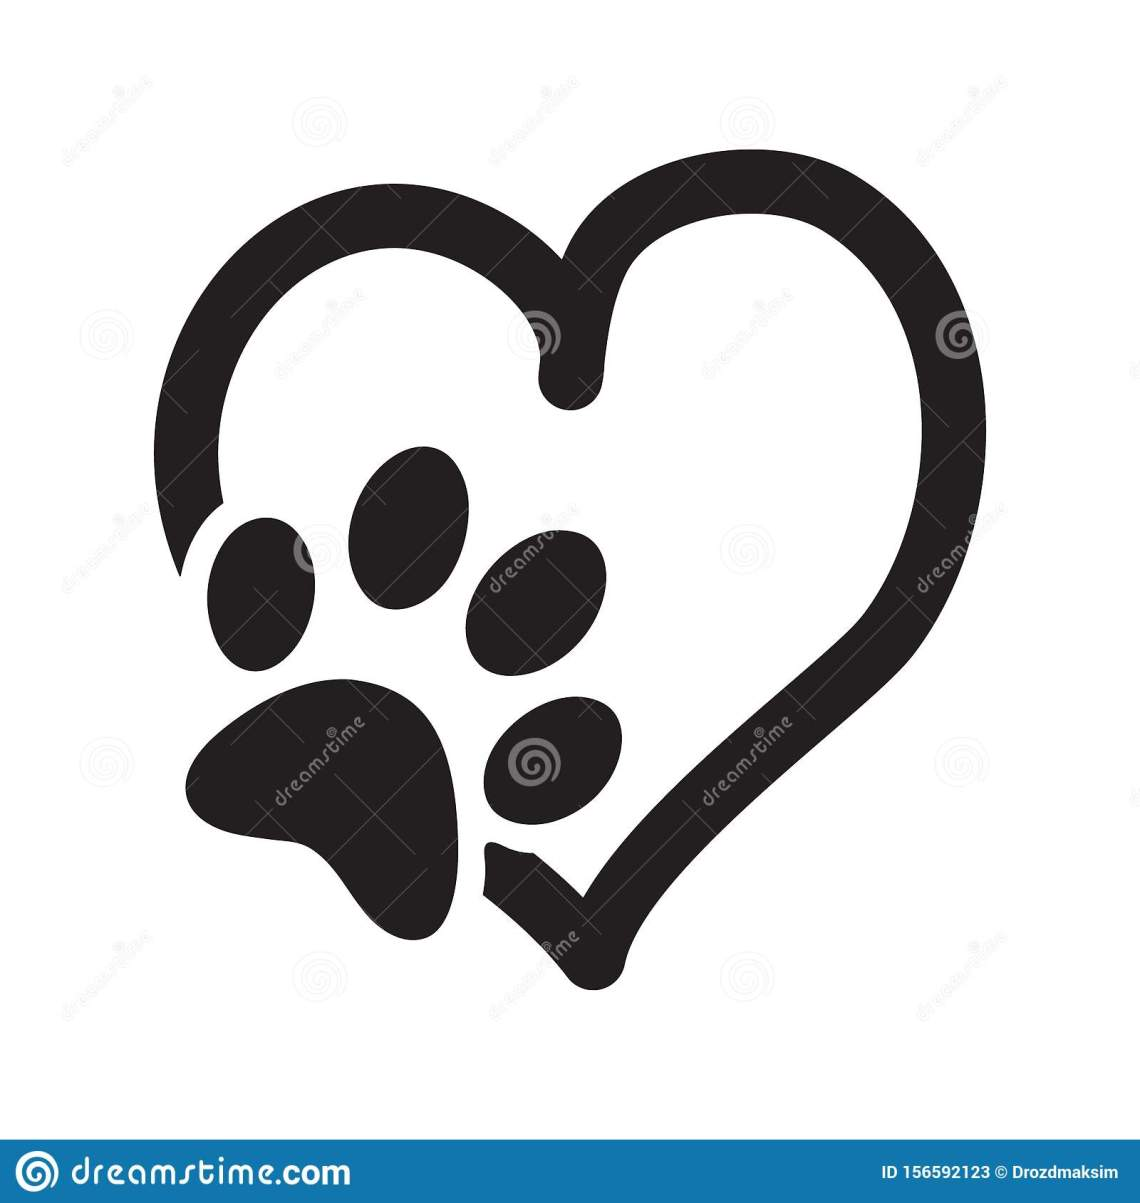 Download Paw Print With Heart, Animal Love Symbol, Isolated Vector ...